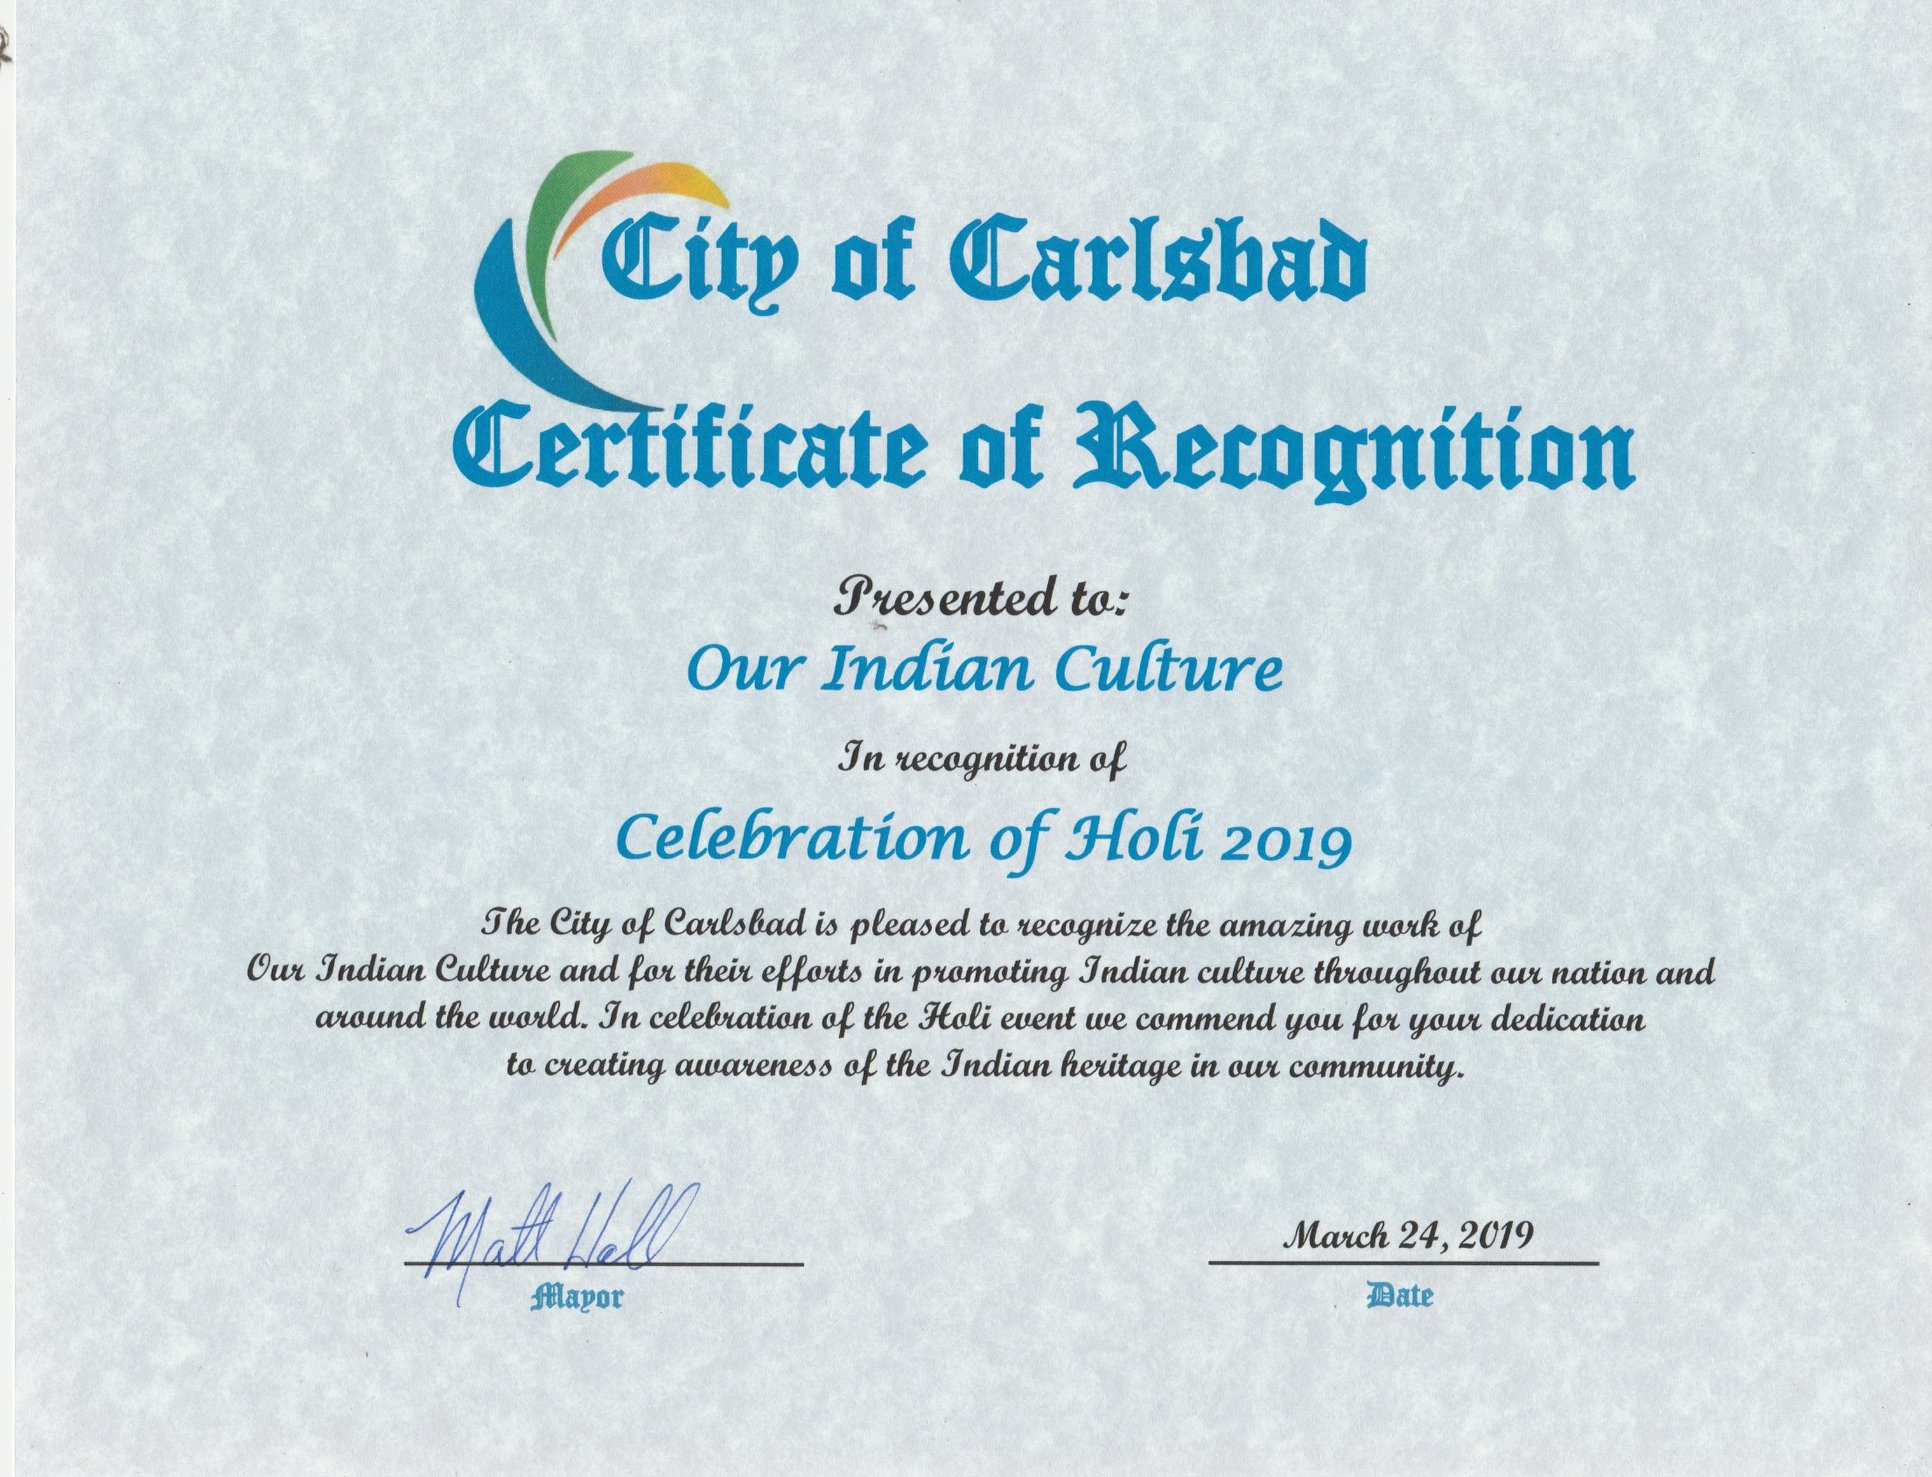 Carlsbad City Mayor Matt Hall awarded Certificate of Recognition to Our Indian Culture for Organizing the HOLI  Festival of Colors at the Flower Fields Carlsbad